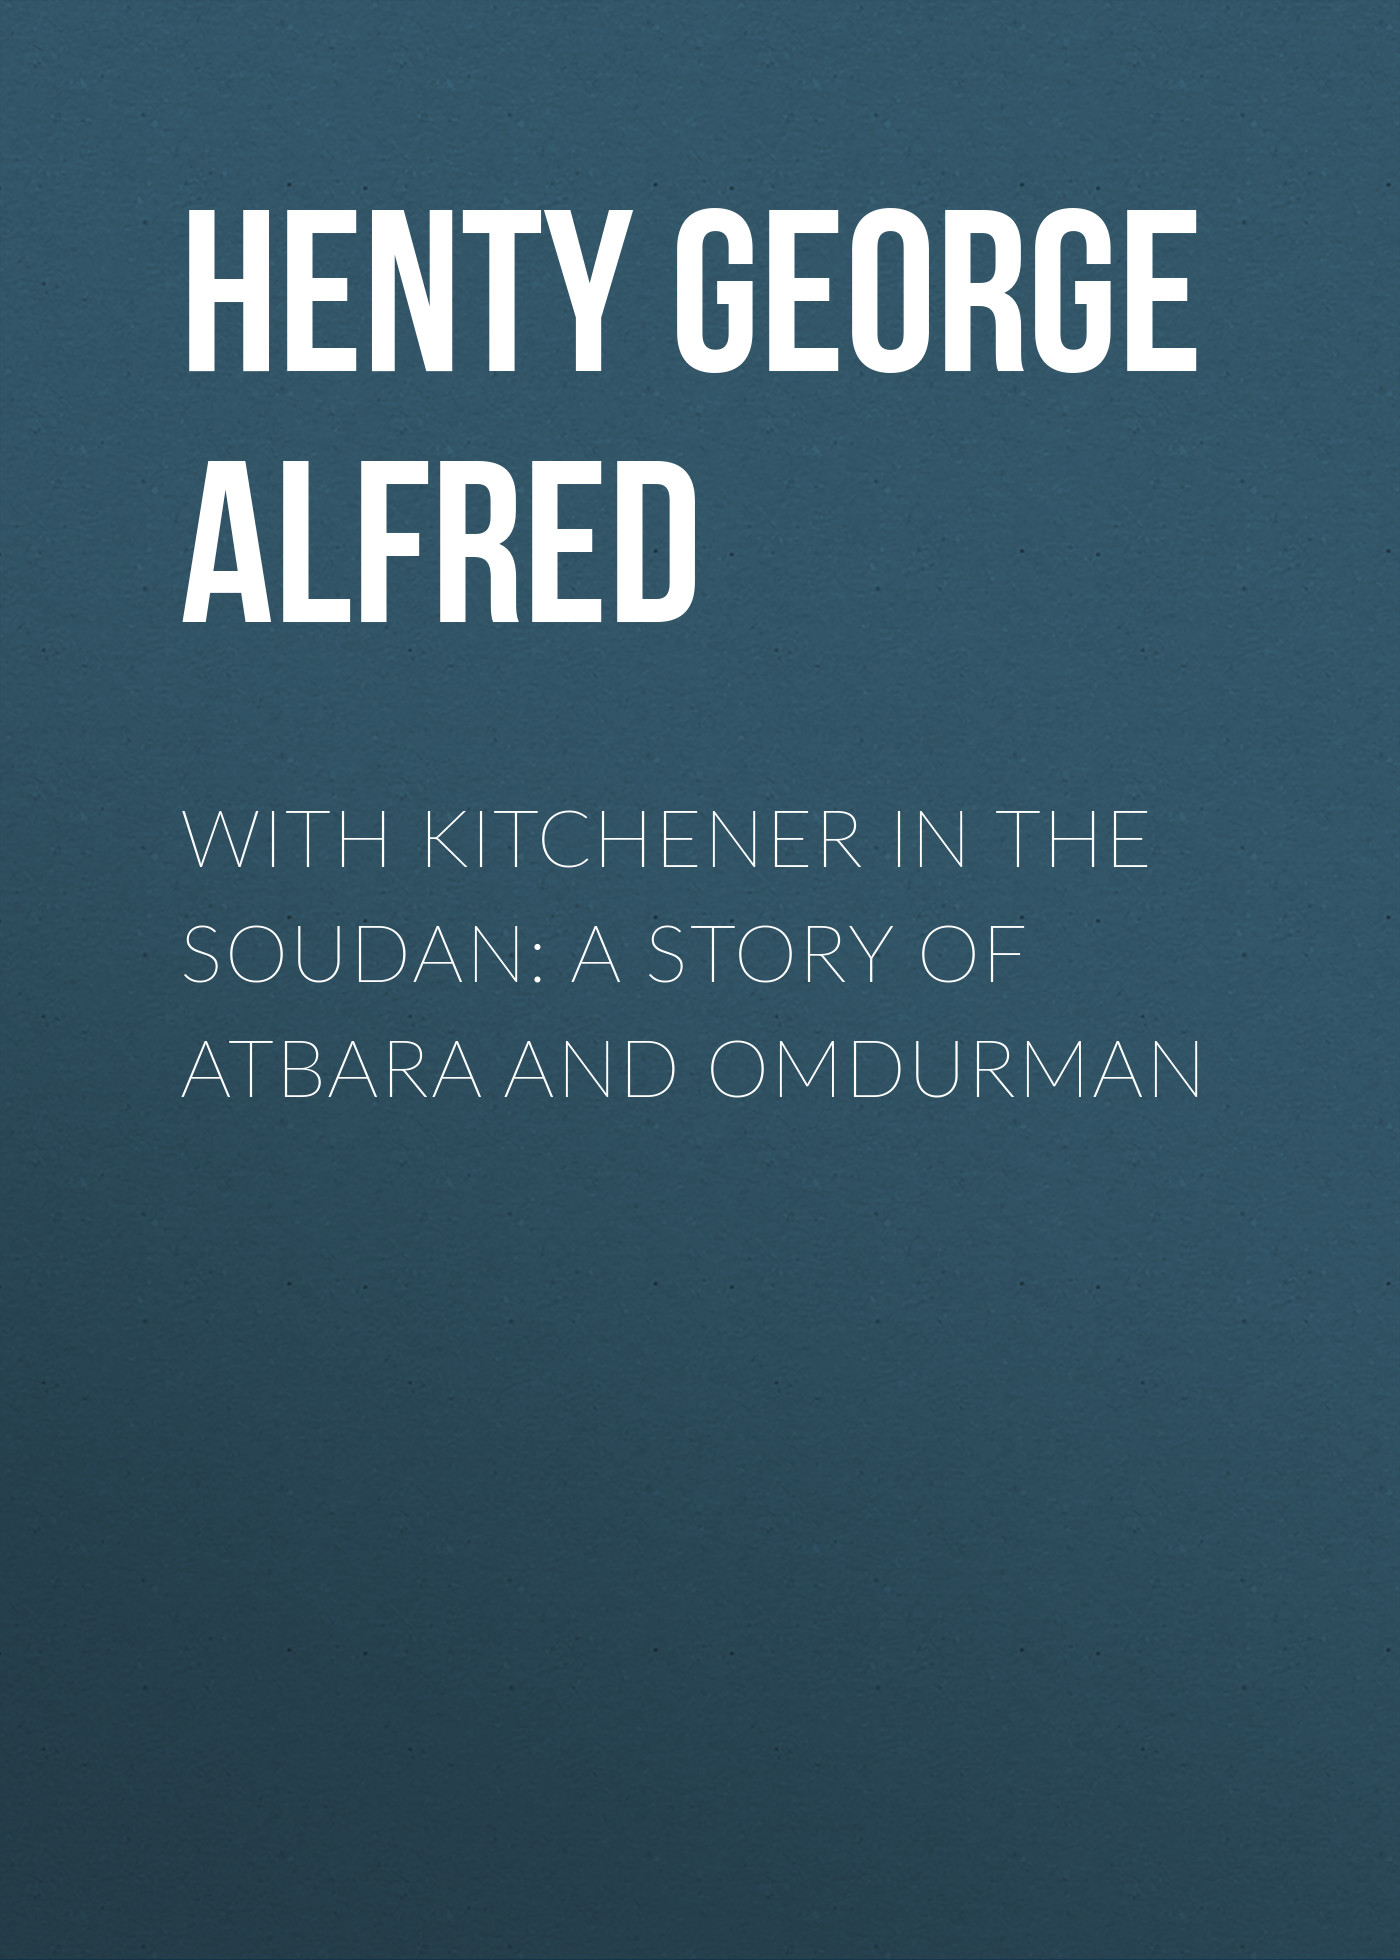 Henty George Alfred With Kitchener in the Soudan: A Story of Atbara and Omdurman george alfred henty with lee in virginia a story of the american civil war